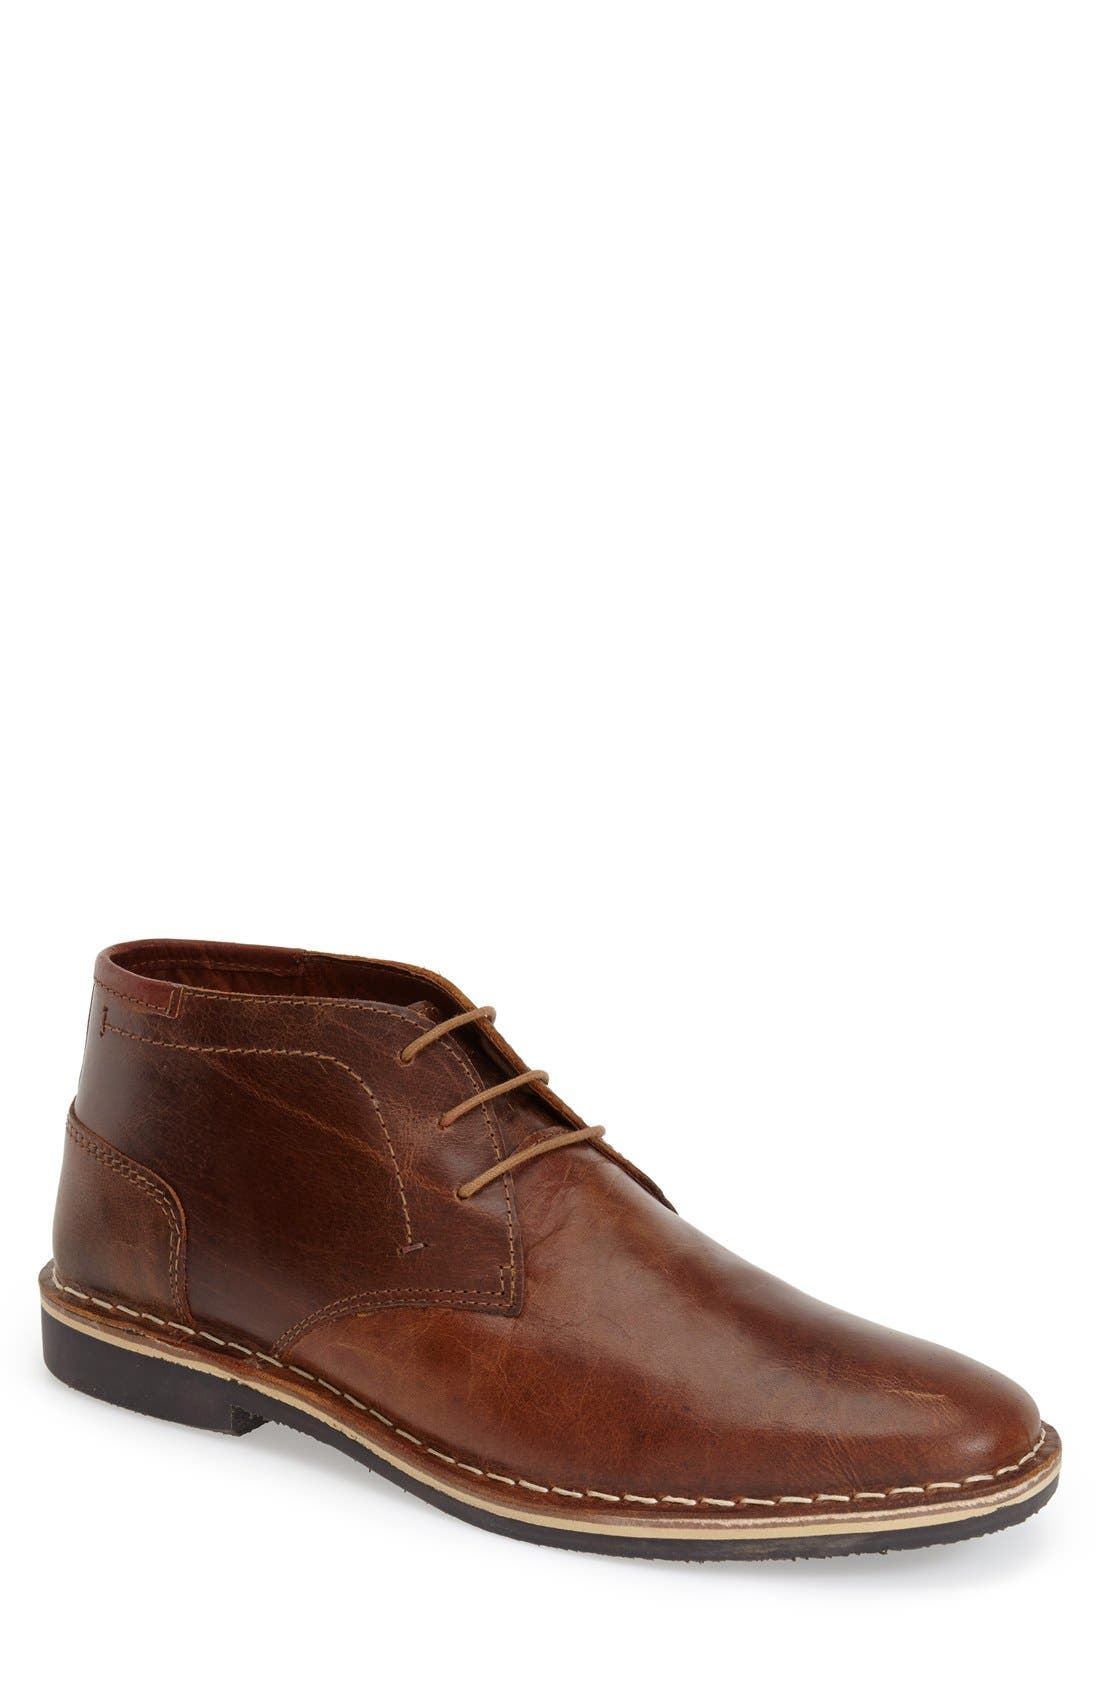 Steve Madden 'Harken' Leather Chukka Boot (Men)